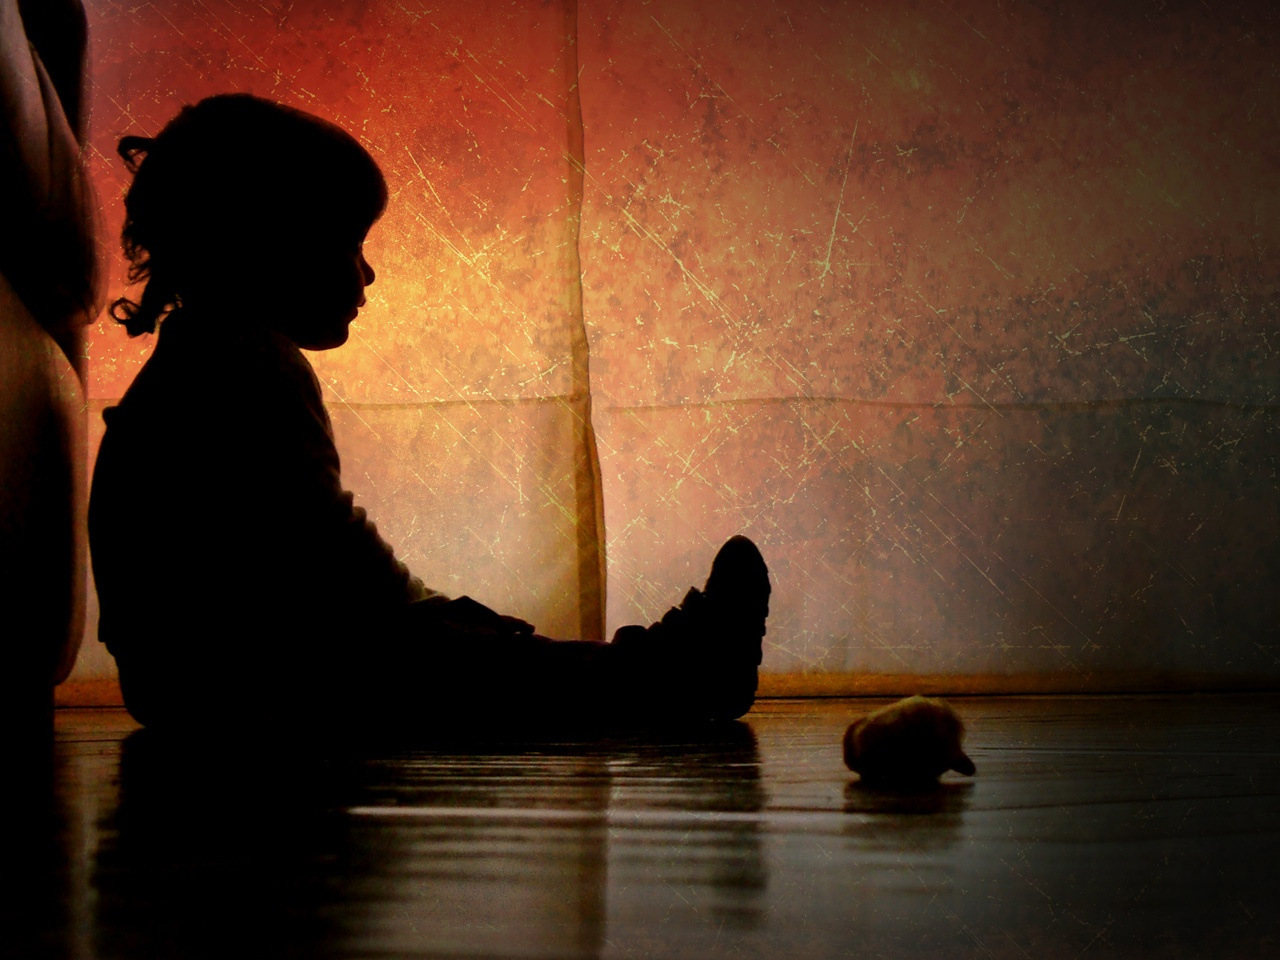 251 children died from abuse, neglect in Texas last year -- crimes on the rise